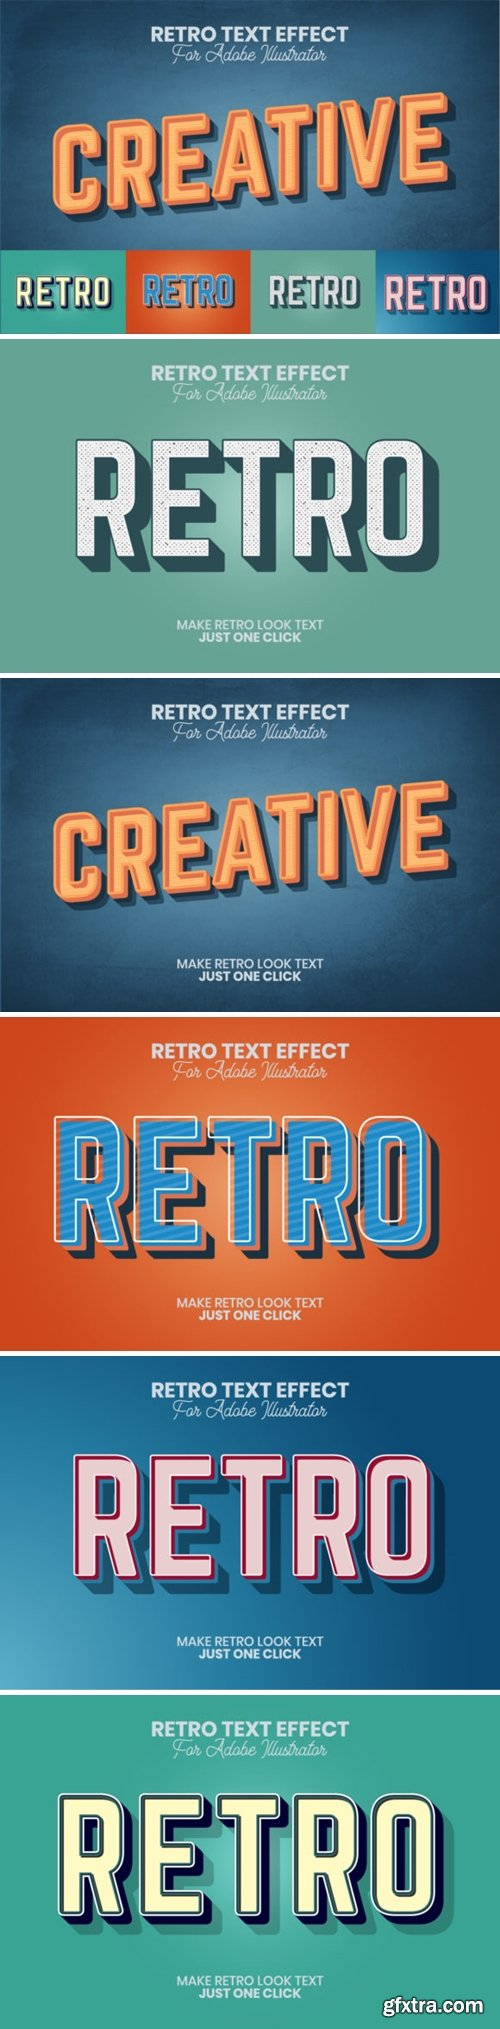 Retro Text Effect for Illustrator 4405404